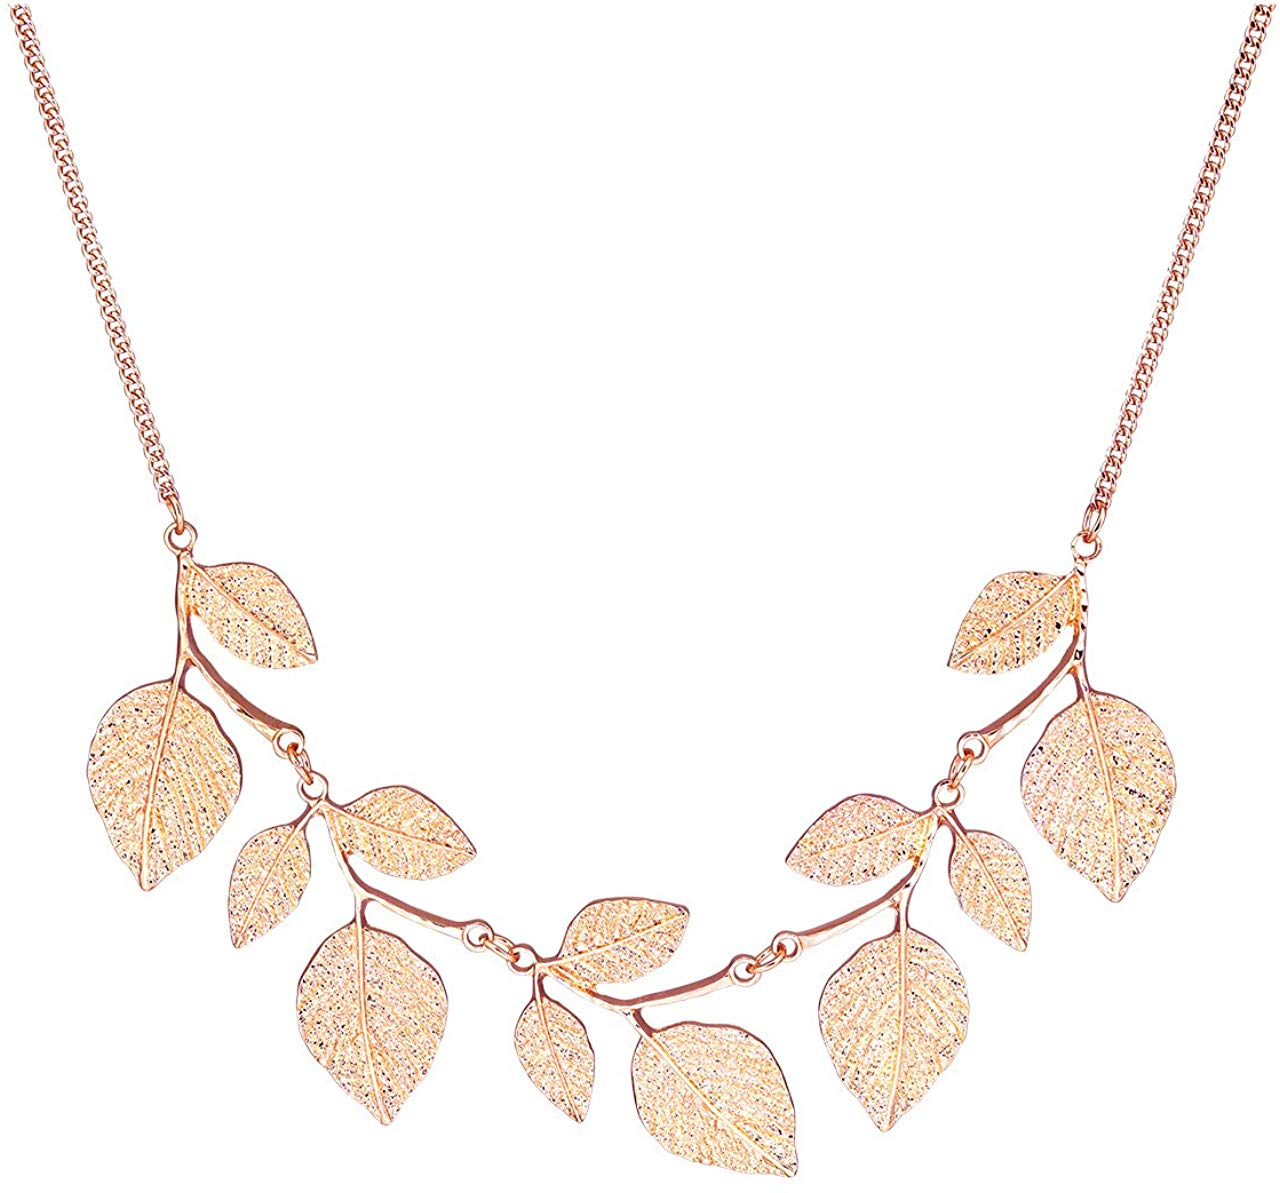 CENAPOG Bohemian Glitter Leaf Collar Necklace for Women Girls Plant Hammered Necklace Chunky Tree Life Choker Necklace Vintage Bib Necklace